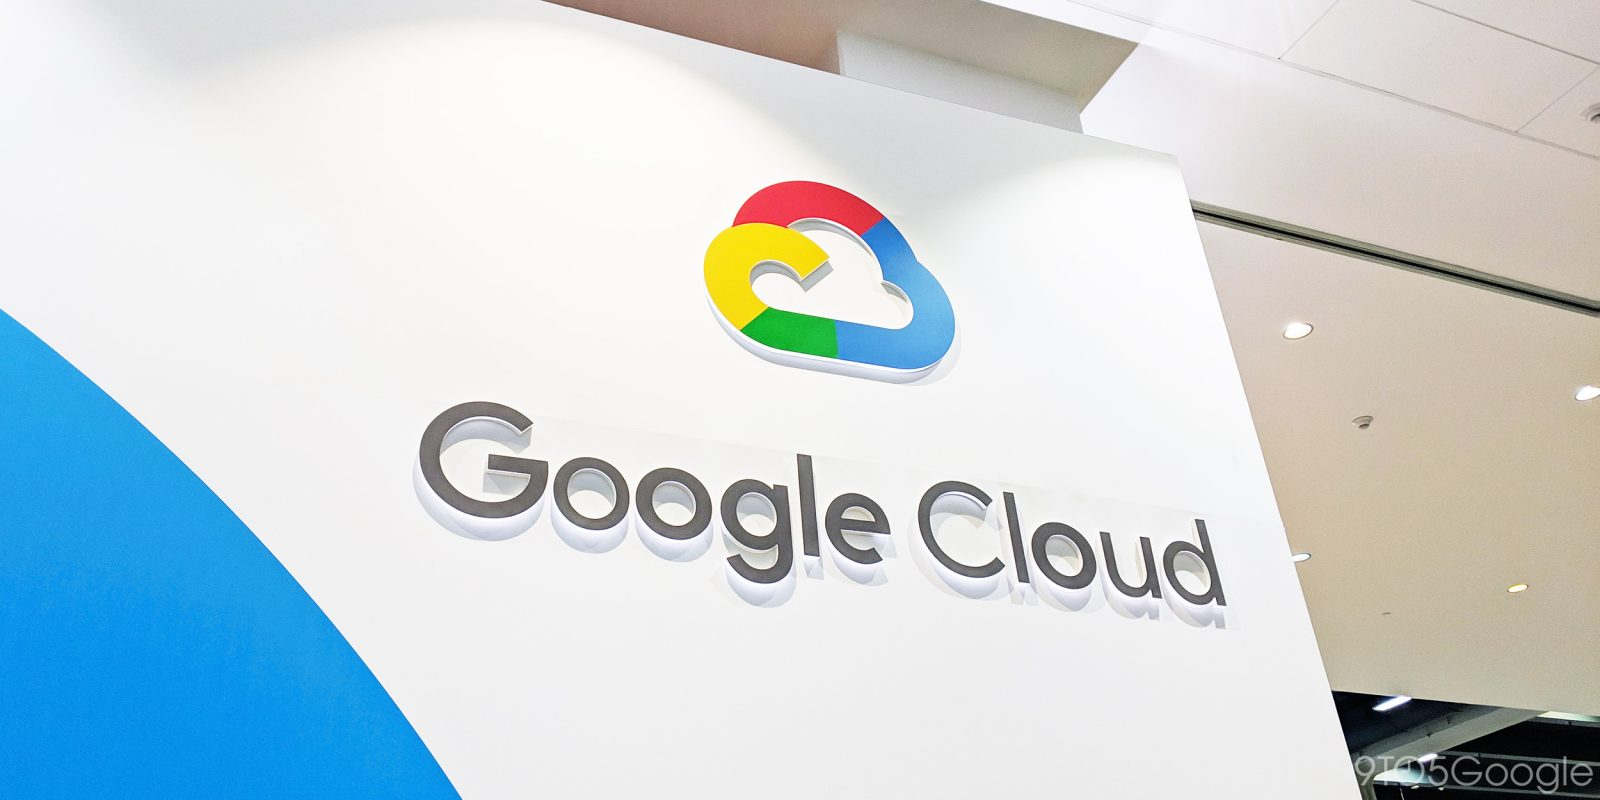 PayPal migrating 'key portions' of its infrastructure to Google Cloud - 9to5Google